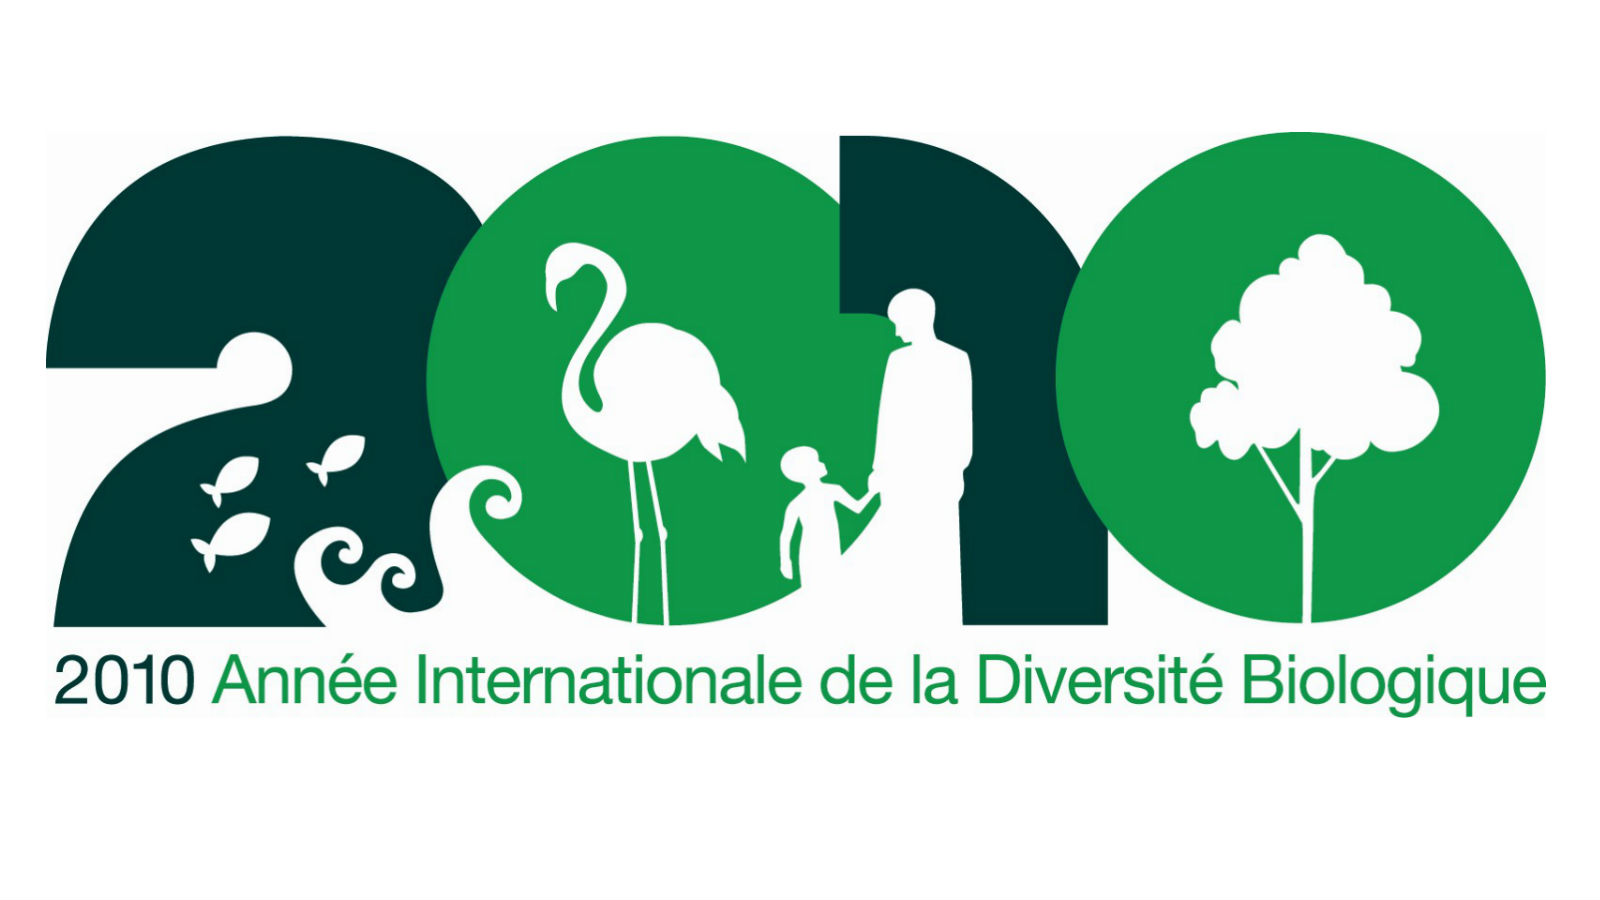 Le site officiel de Biodiversité 2010